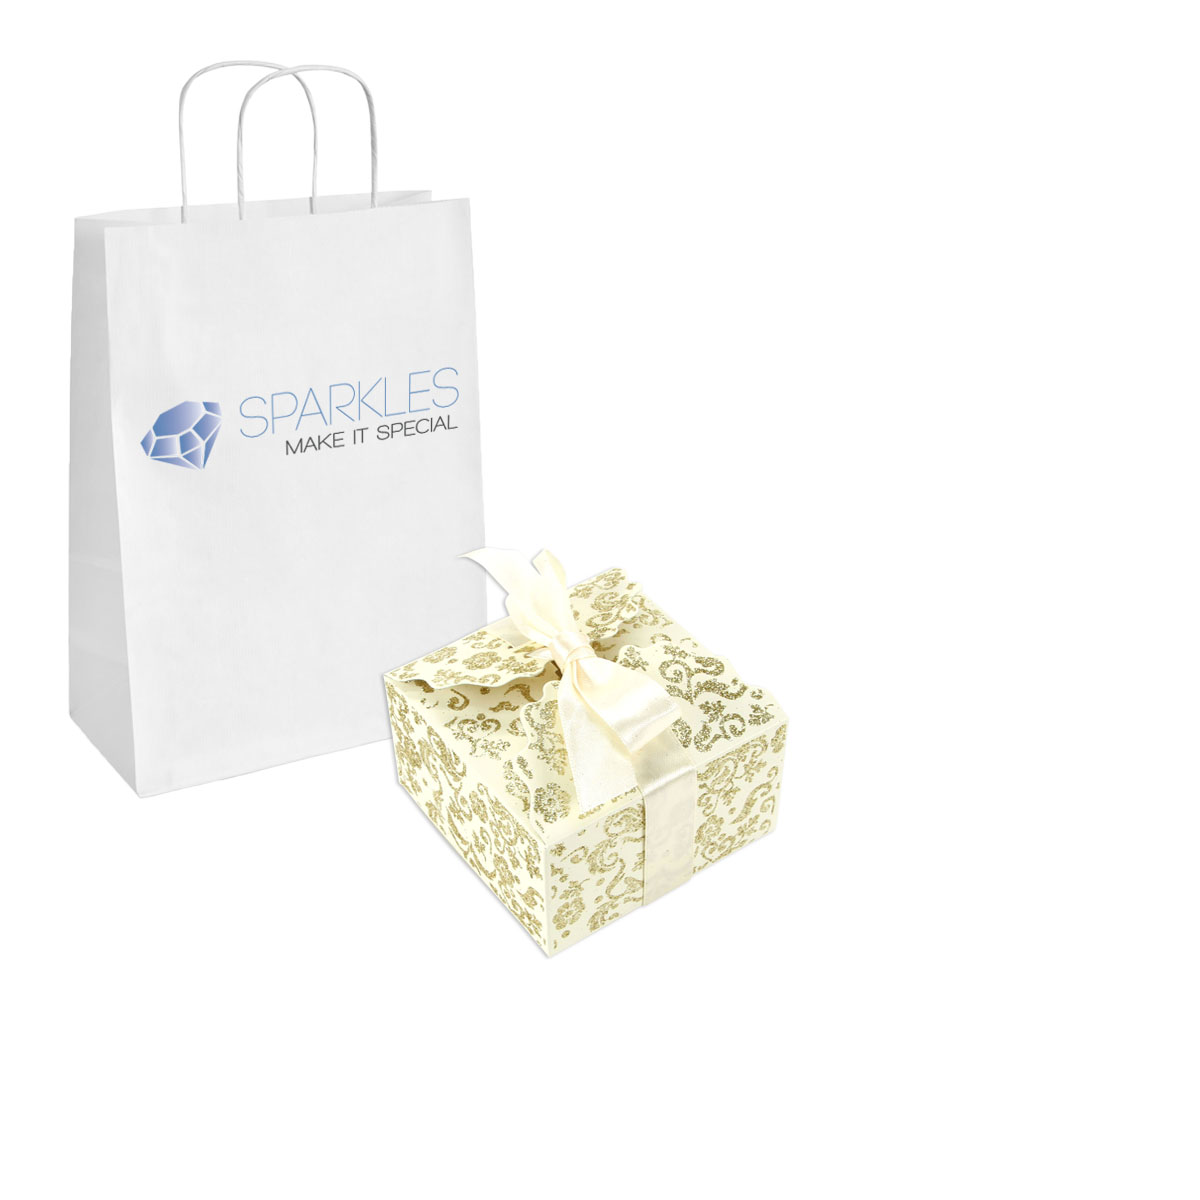 Wedding Gift Boxes Large : Details about 50 Large Ribbon Wedding Favor Gift Boxes Baby Shower ...